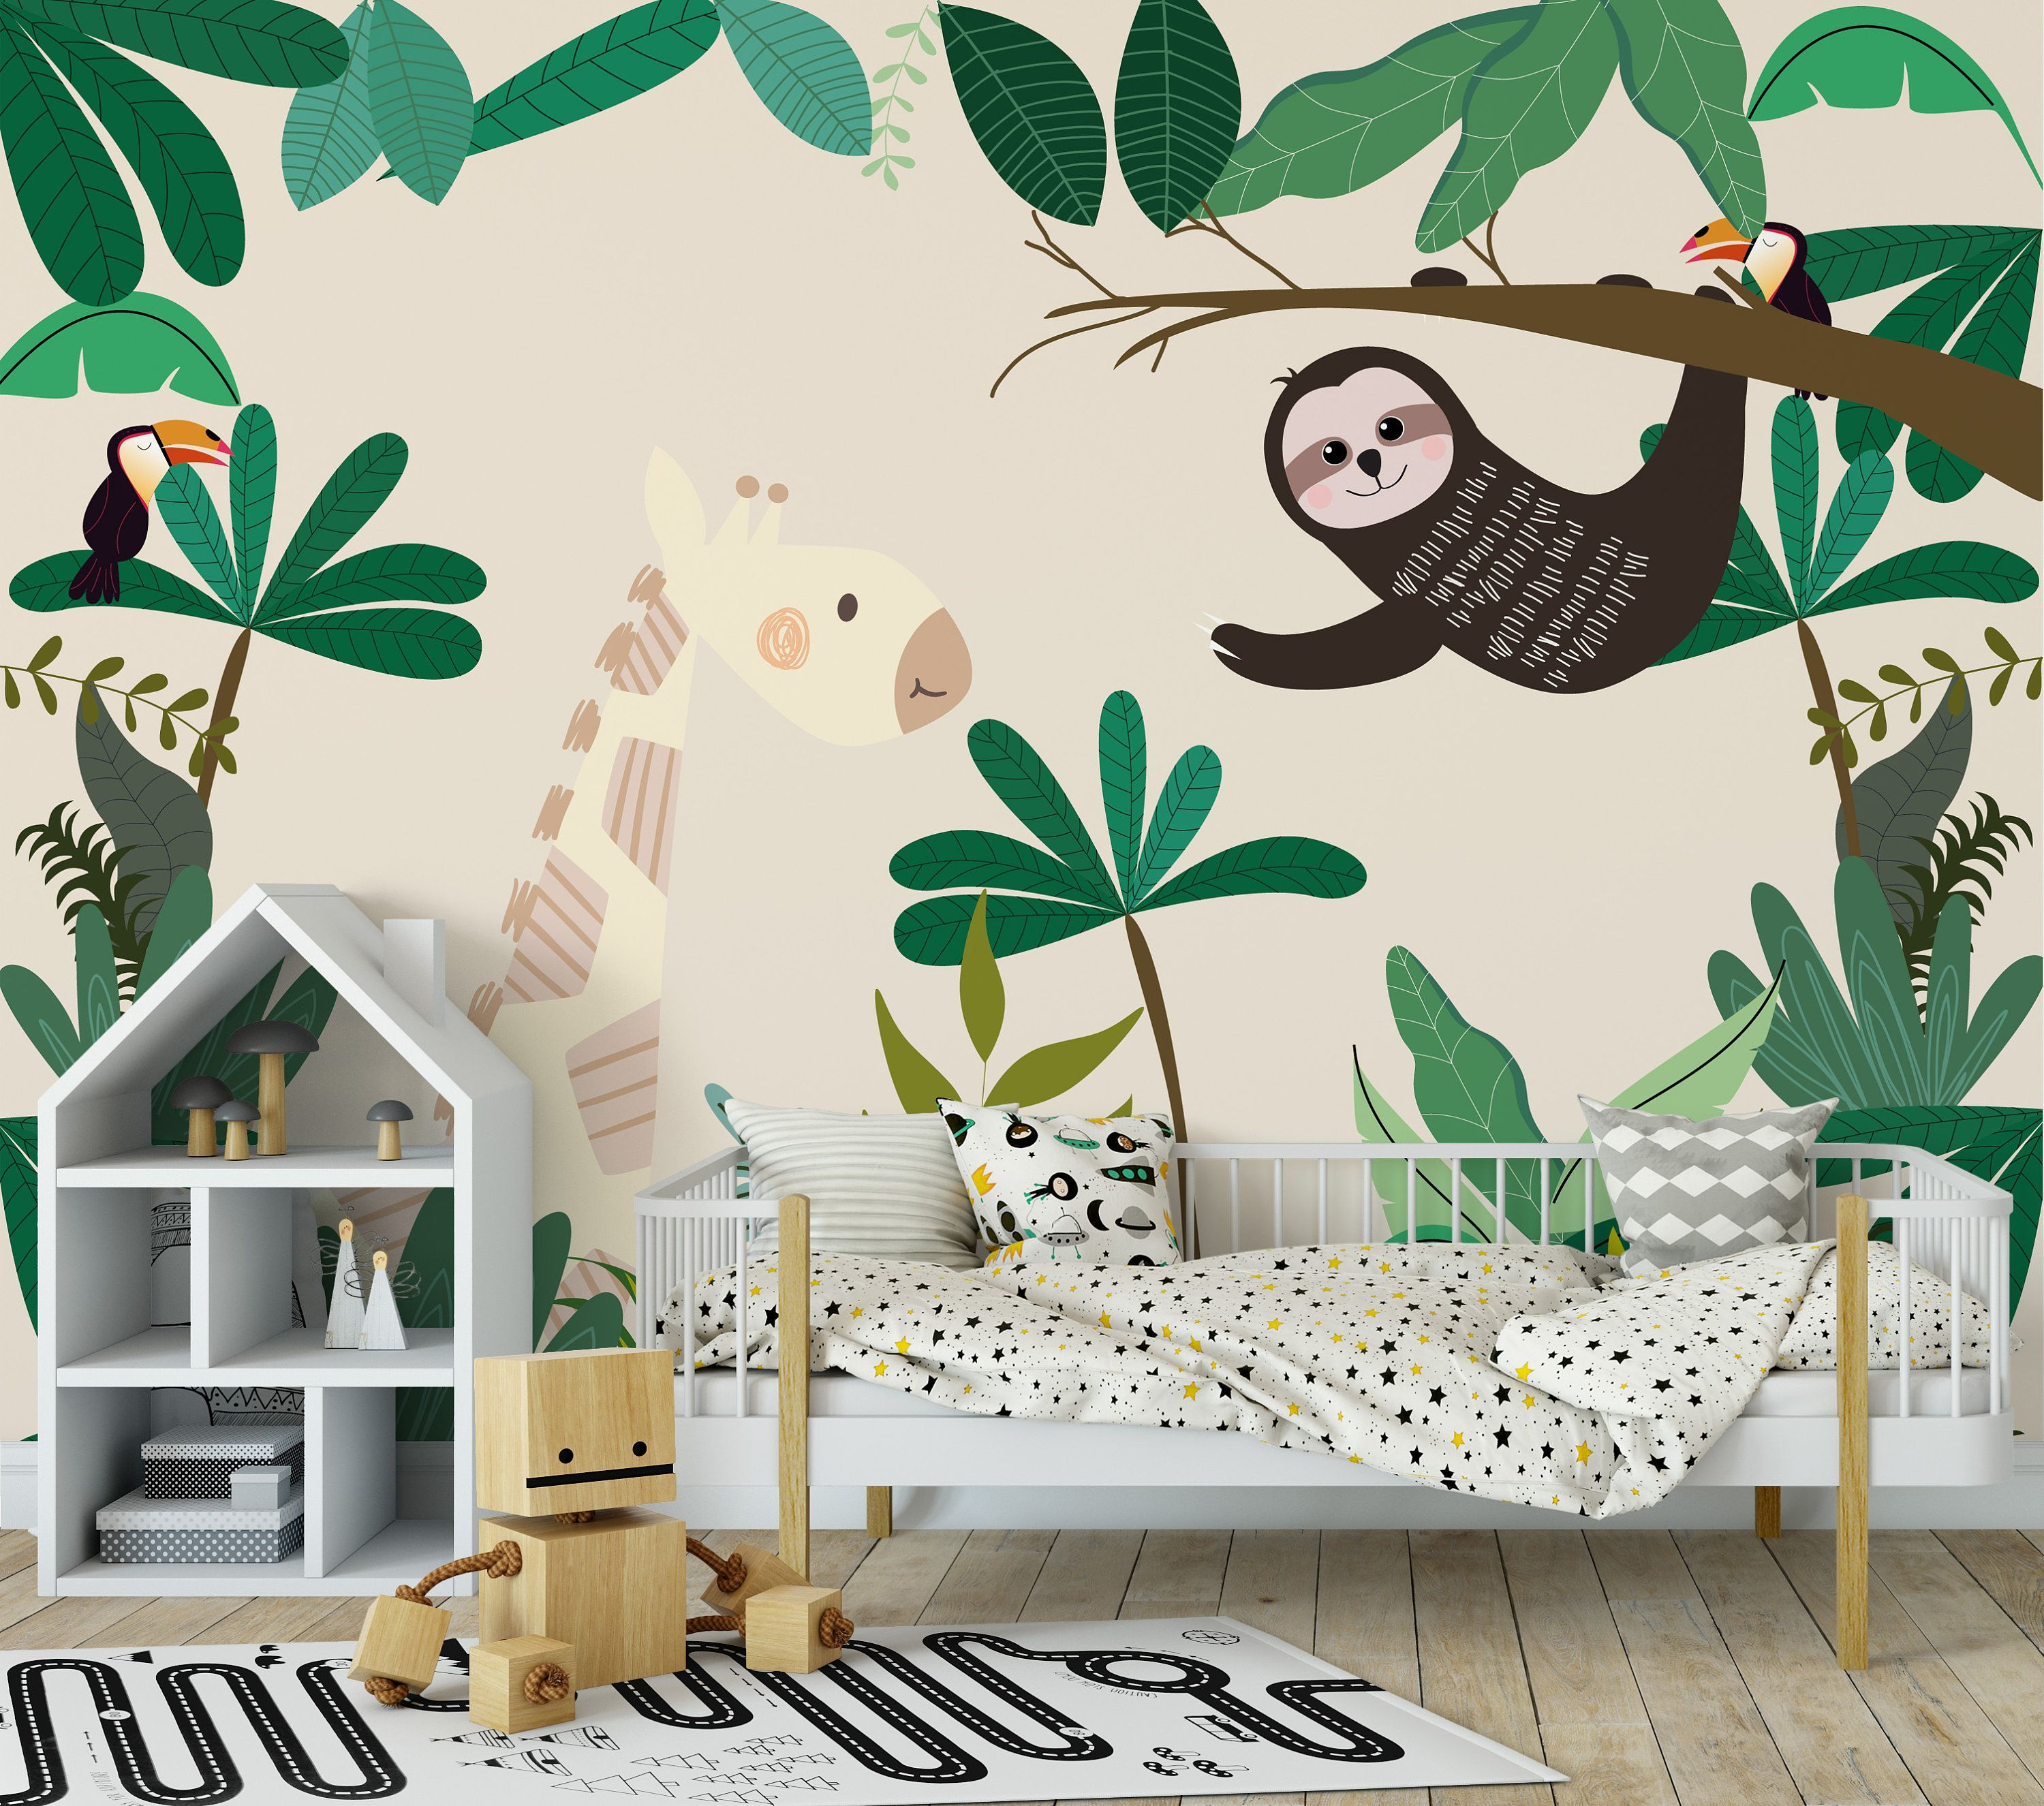 Sloth Giraffe Toucan Tropical Botanical Jungle Forest Etsy In 2021 Kids Jungle Room Kids Room Wall Murals Themed Kids Room